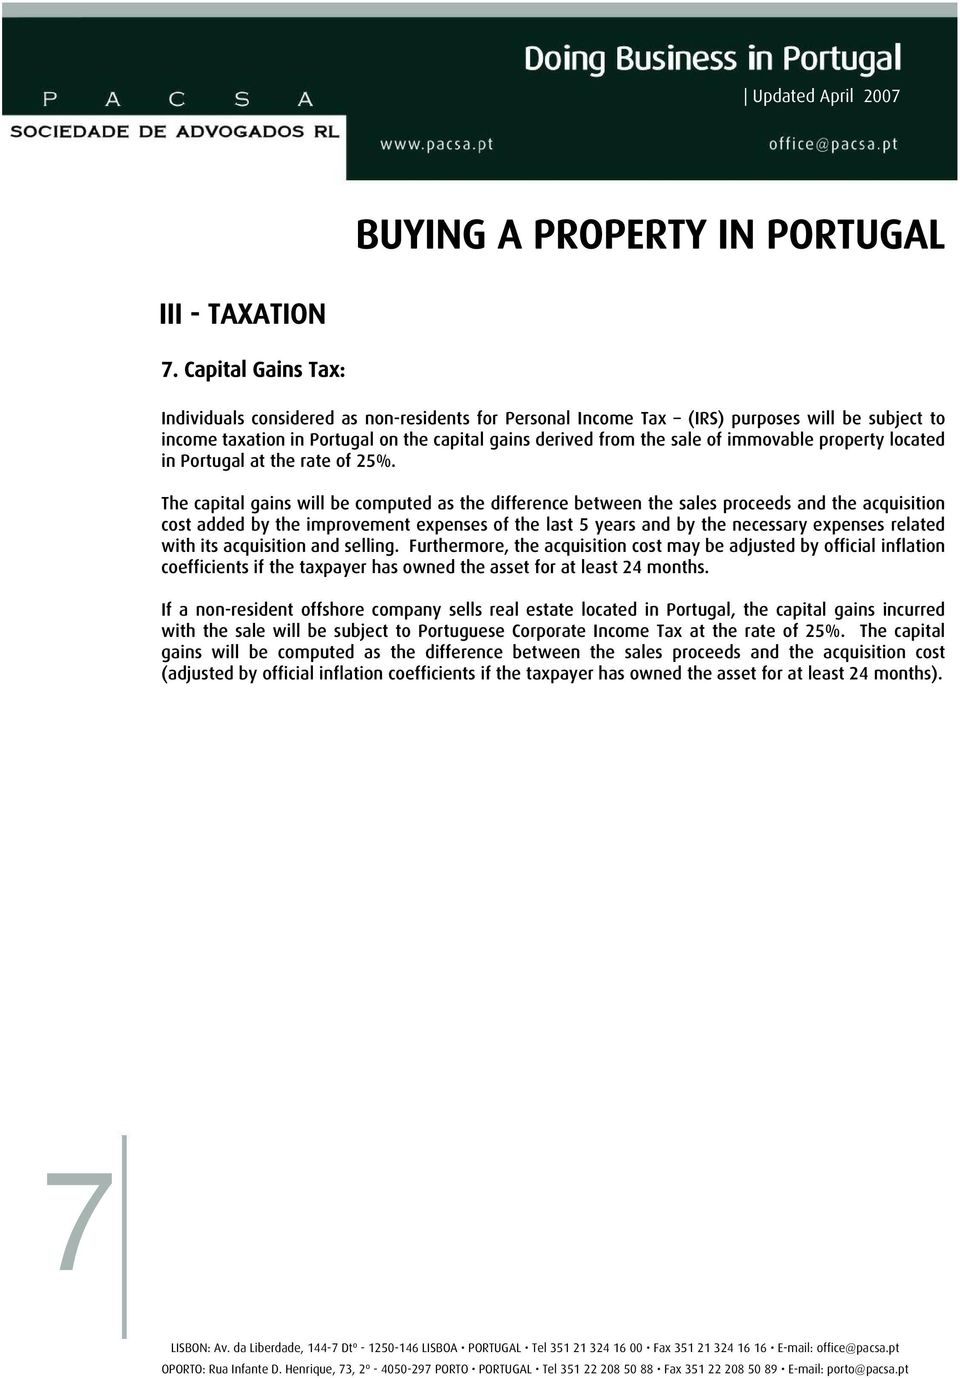 immovable property located in Portugal at the rate of 25%.